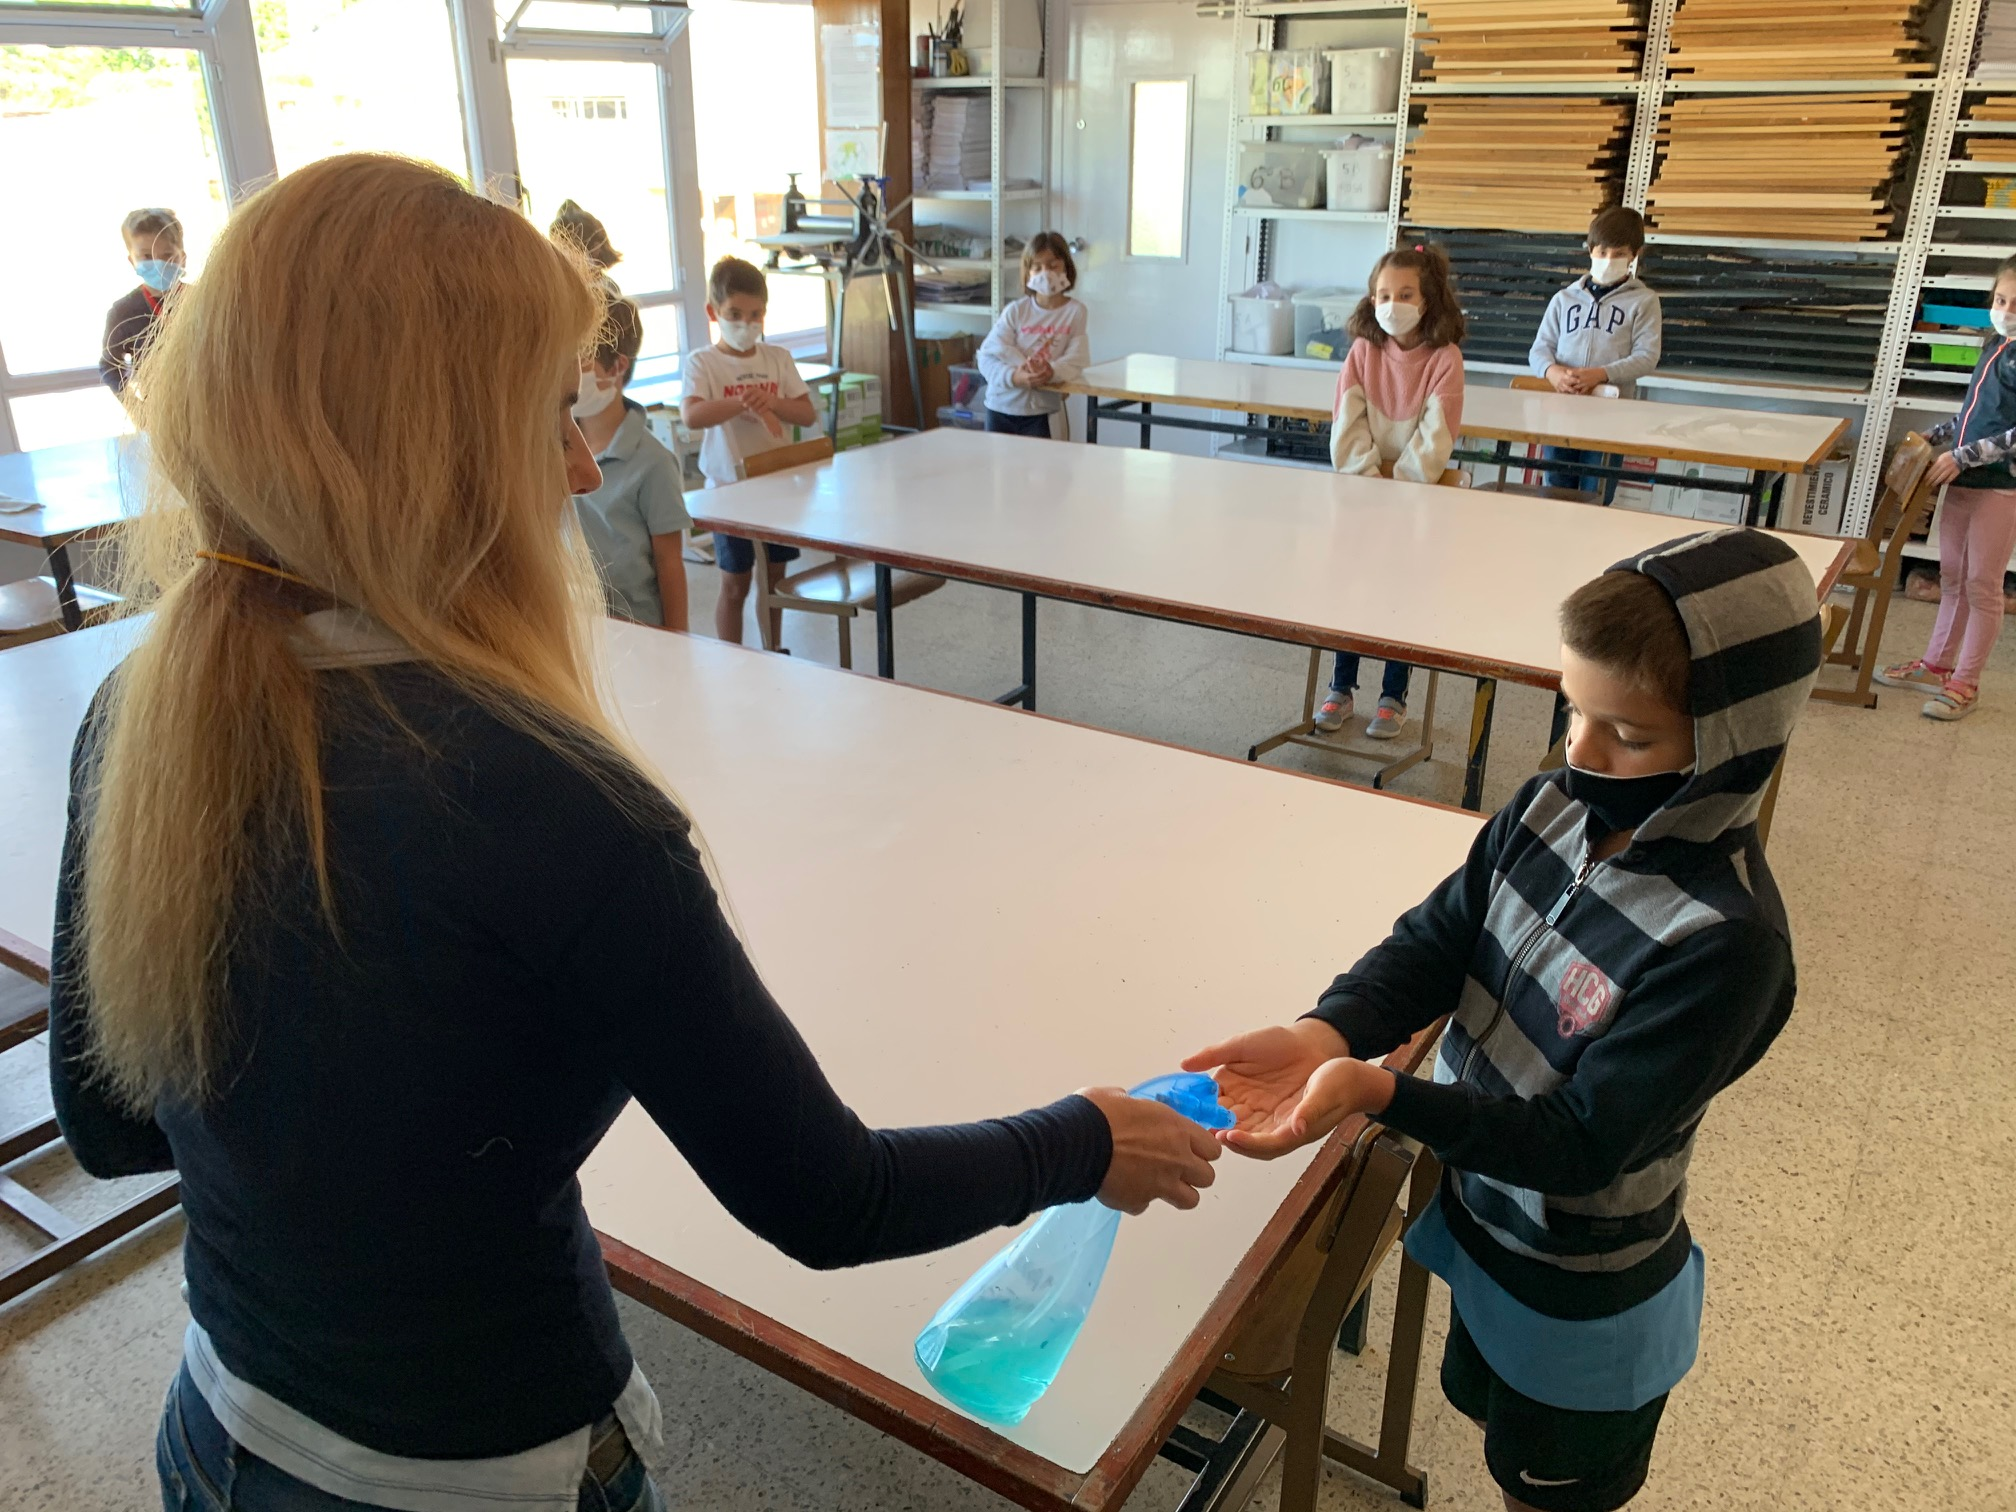 A teacher offers hand-sanitizing gel to a student at Colegio Virgen de Europa in Madrid, on Friday, June 12. Students have to disinfect their hands before and after each class.